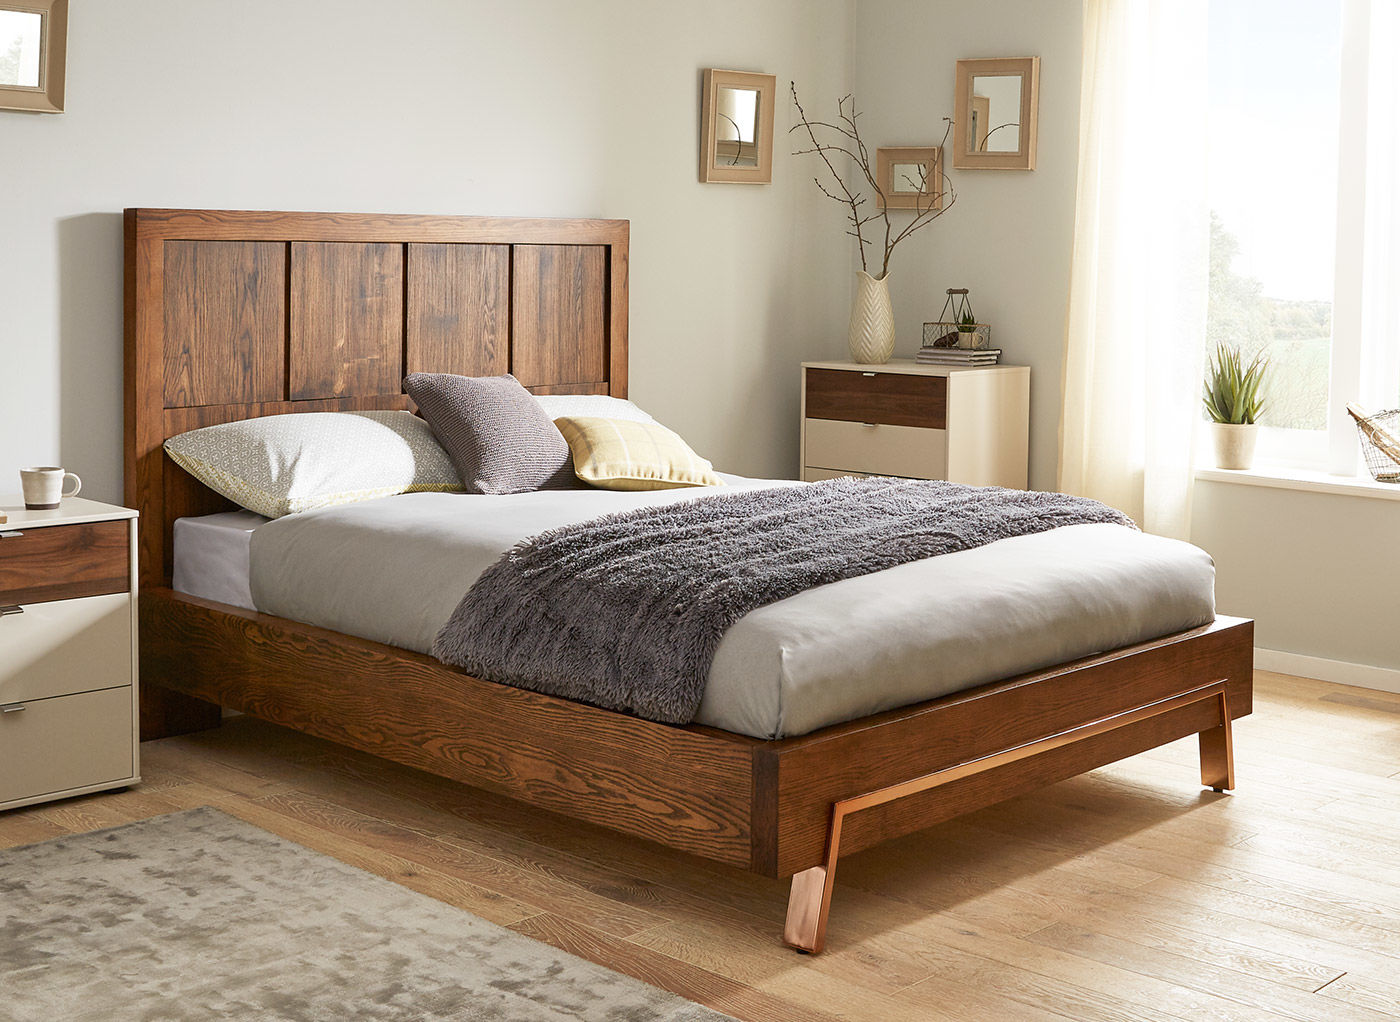 wooden beds grant dark wood and copper bed frame IEALFFO